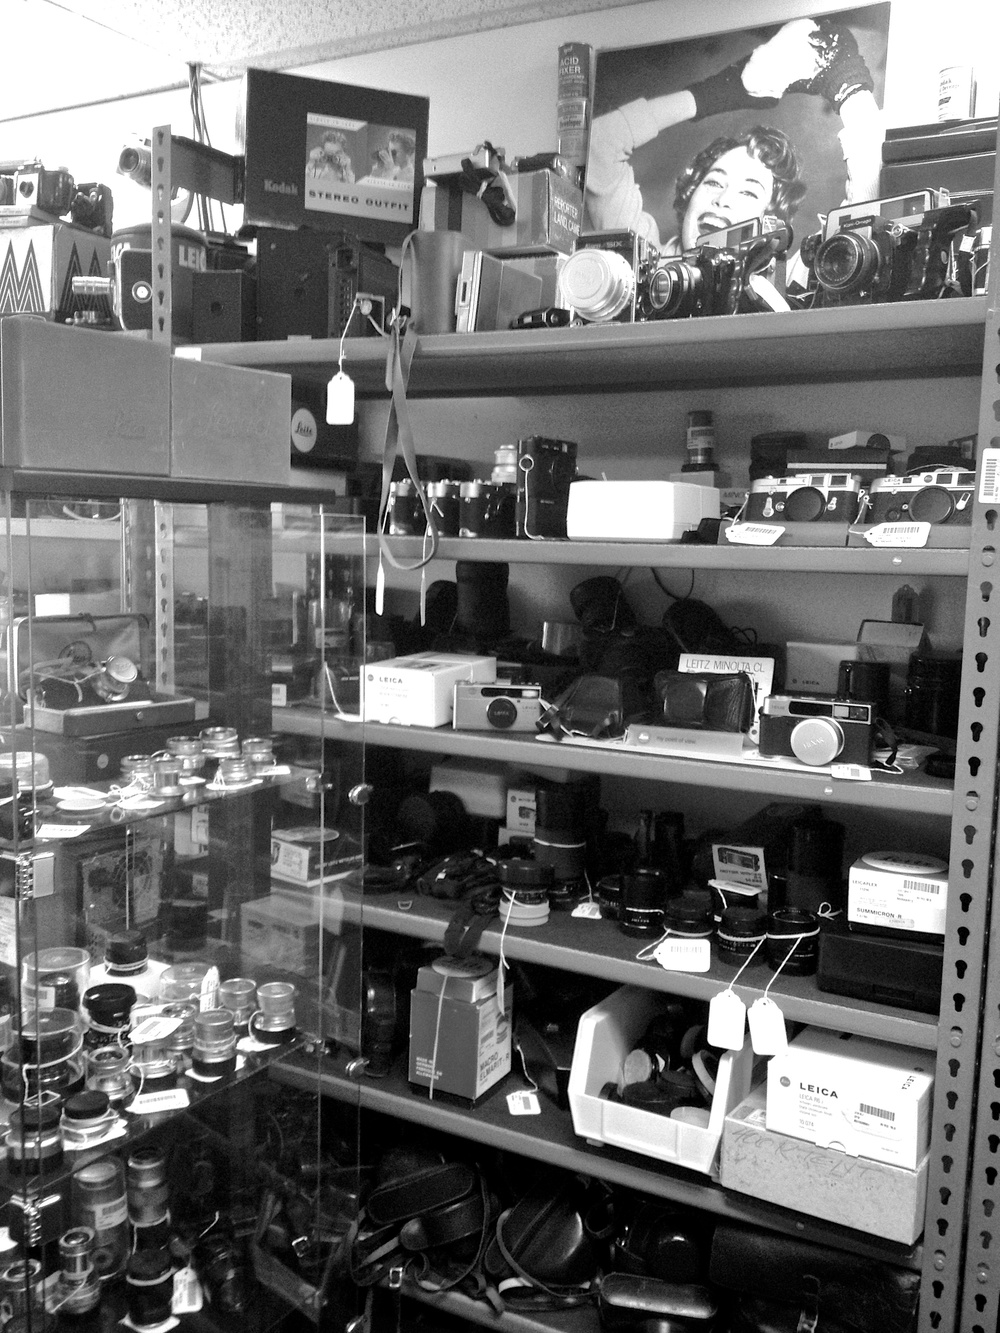 The used Leica shelf at National Camera in Golden Valley, MN.